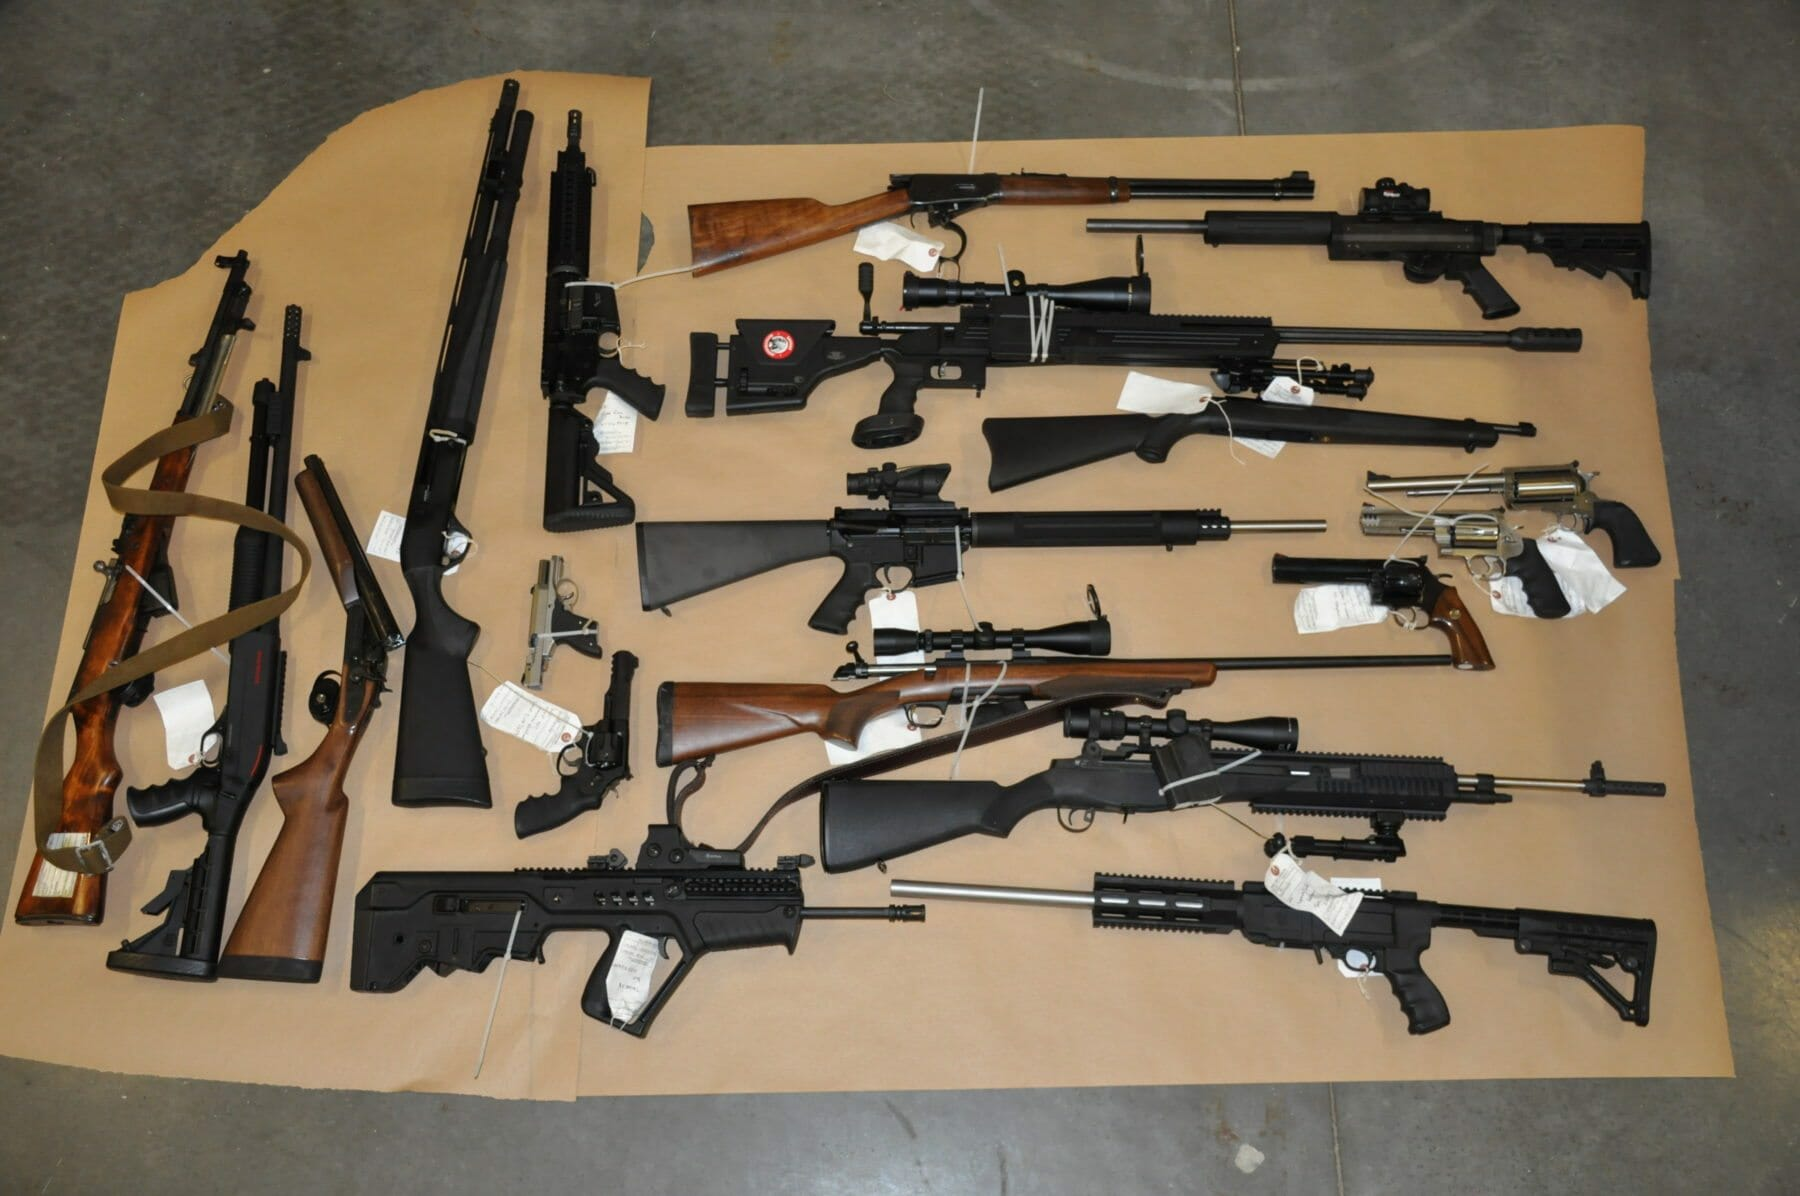 Guns Seized After Courtenay Man Arrested For Firearms-Related Offences